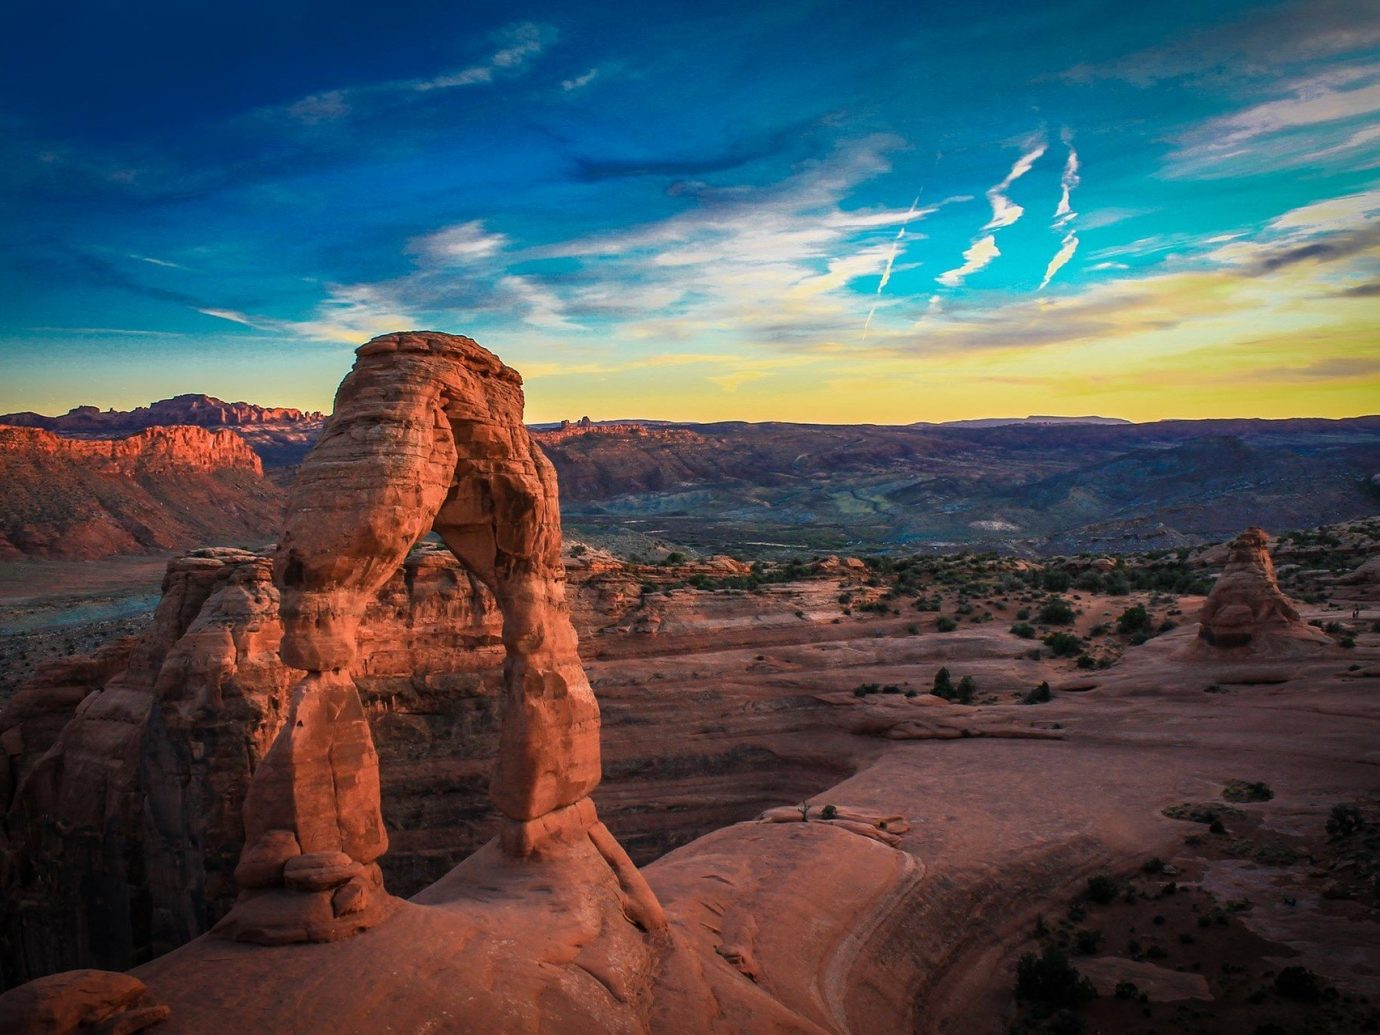 calm canyon colorful Desert Hotels isolation red rock remote rock Rocks Scenic views serene Sunset Trip Ideas Weekend Getaways sky Nature valley outdoor mountain geographical feature landform natural environment badlands butte sunrise landscape wadi arch plateau formation geology dusk terrain material